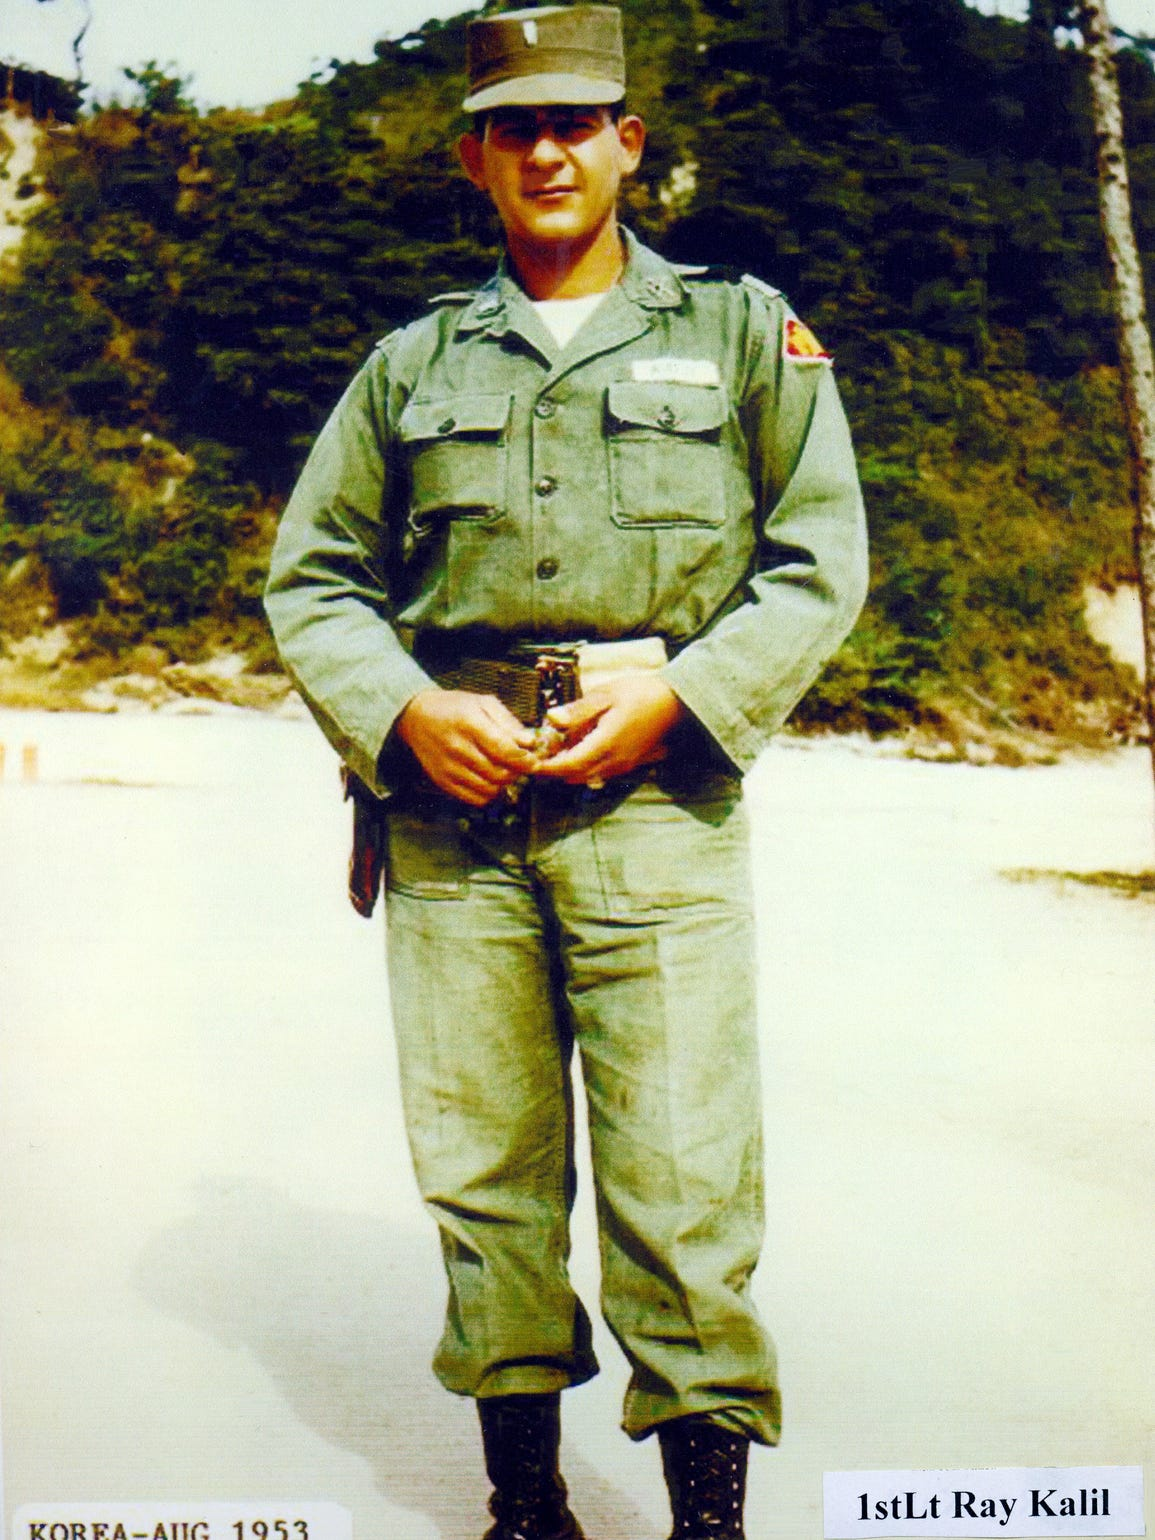 First Lt. Ray Kalil in Korea, August 1953.